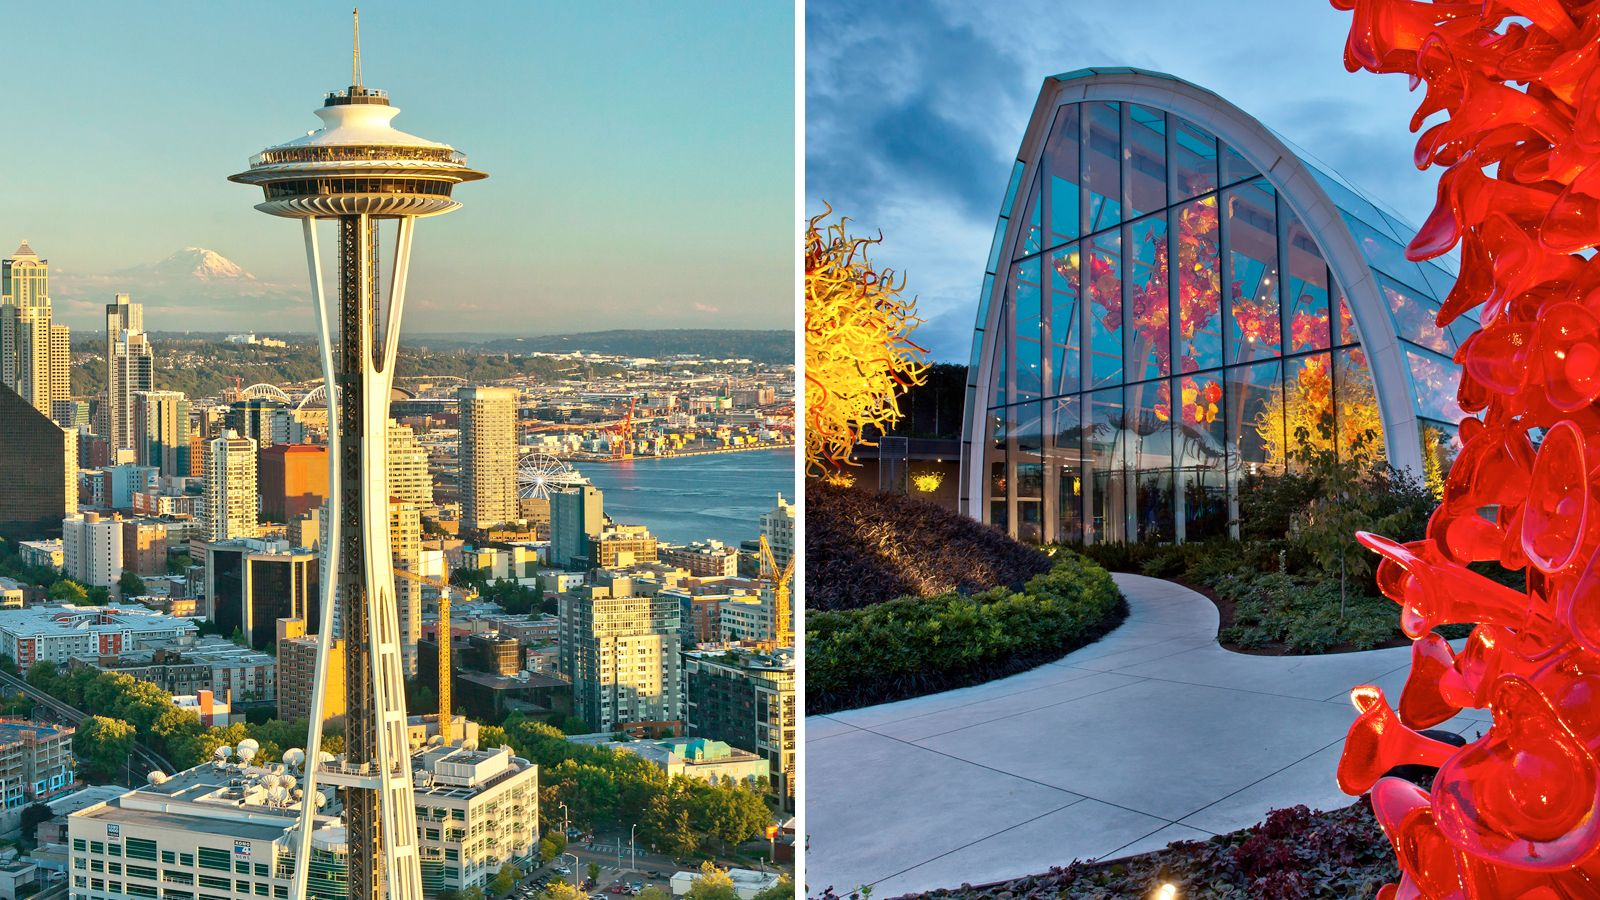 Combo image of the Space Needle and Chihuly Garden in Seattle